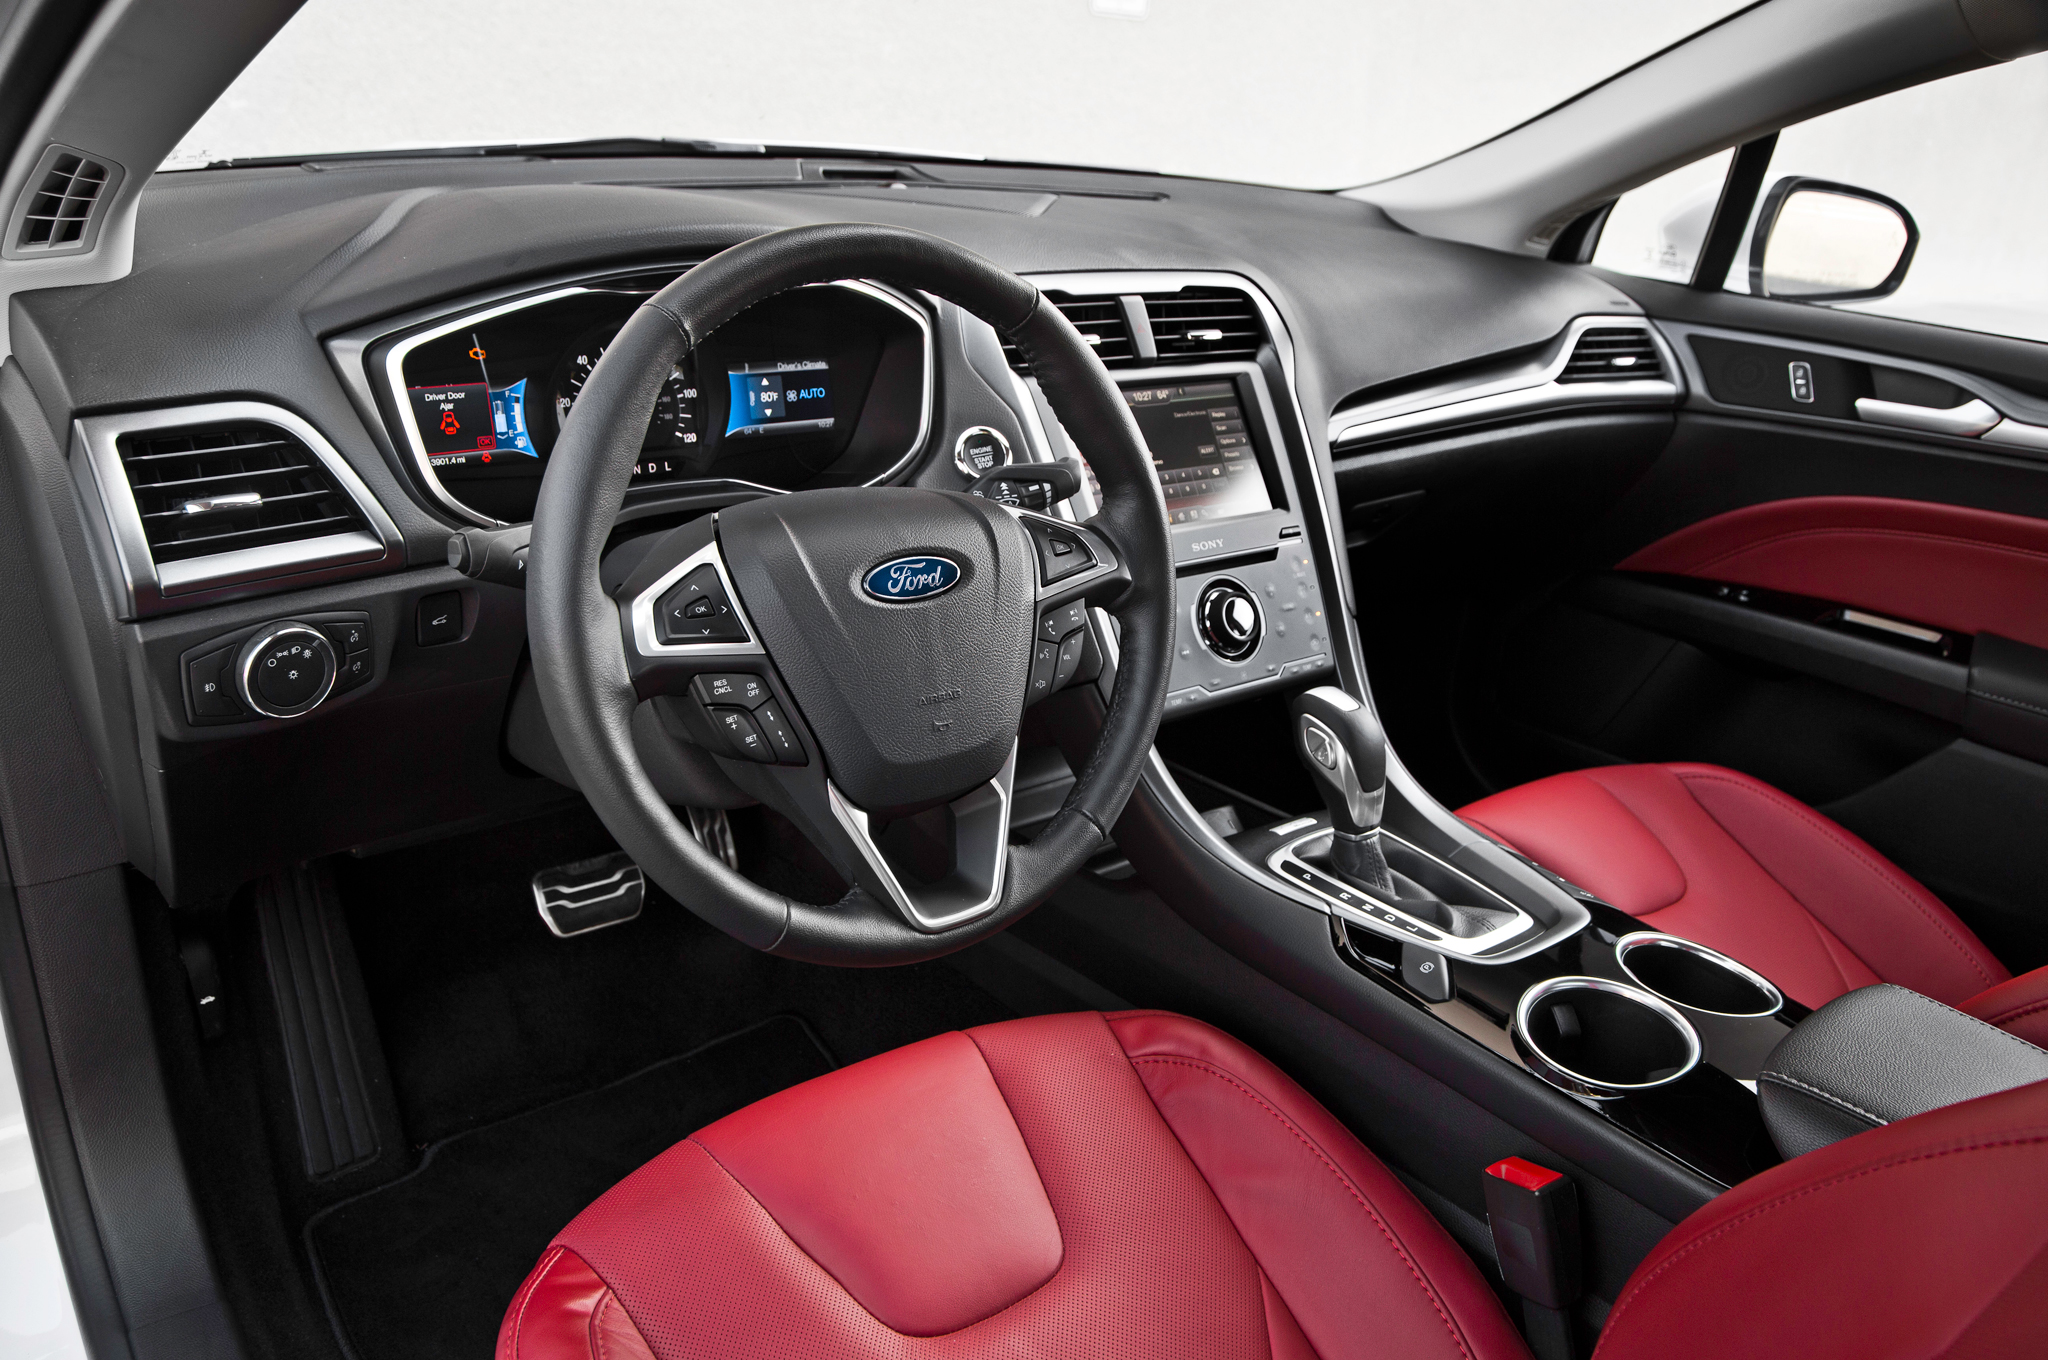 Ford fusion interior specifications for Ford fusion interior dimensions